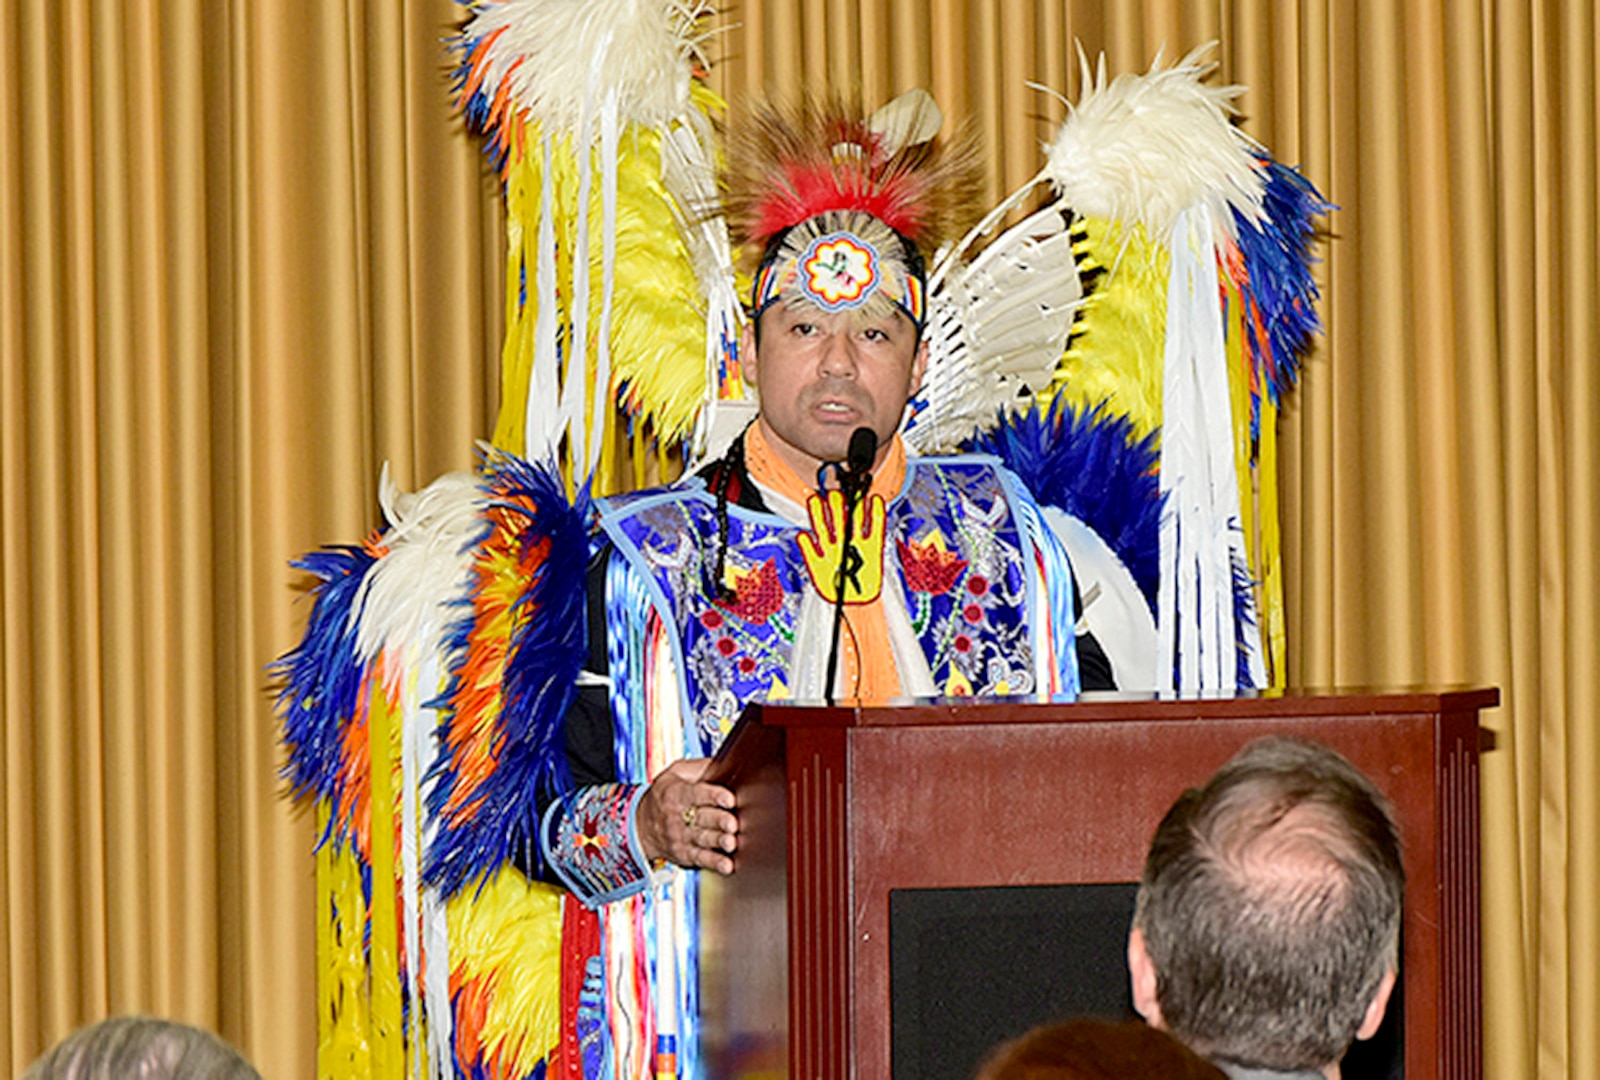 E. Keith Colston, administrative director for the Maryland Commission on Indian Affairs, describes the Native American culture during a Native American Heritage Month Observance at the McNamara Headquarters Complex Nov. 18.